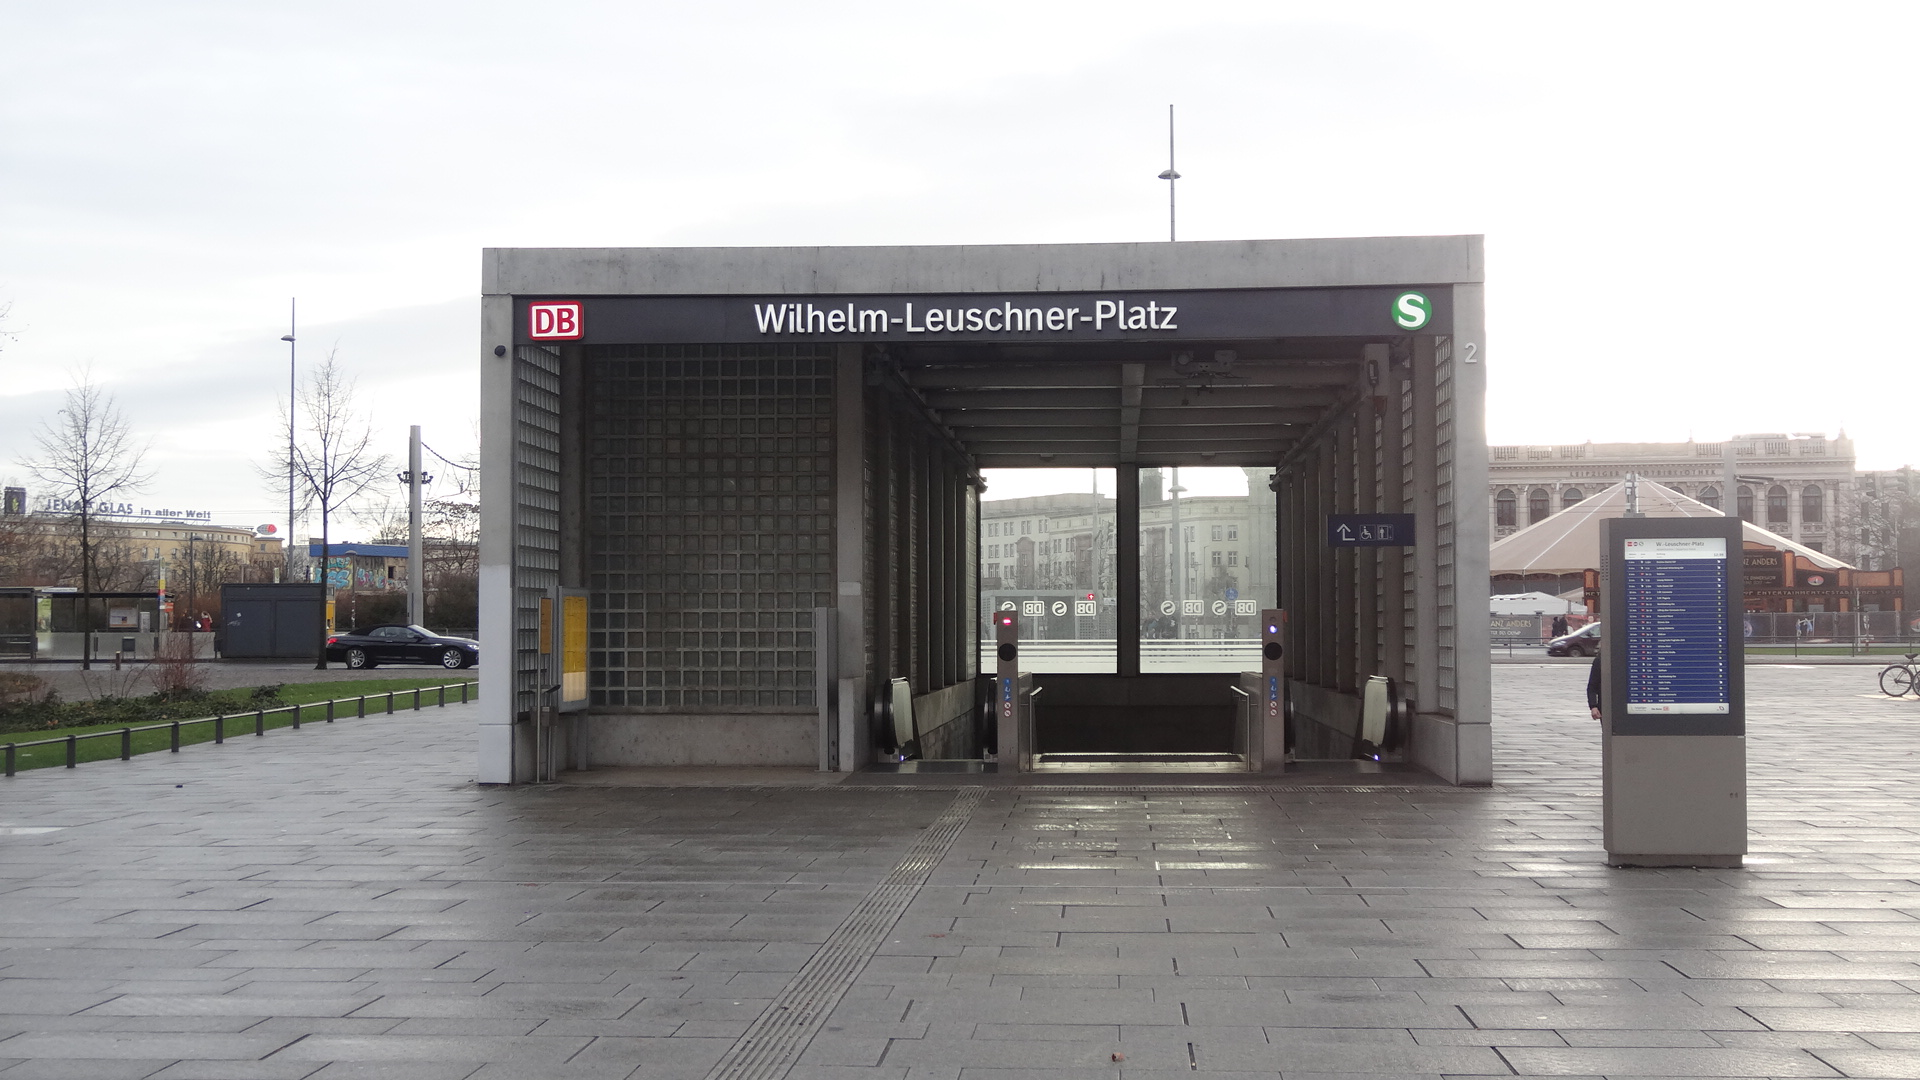 Wilhelm-Leuschner-Platz station entrance on an empty place